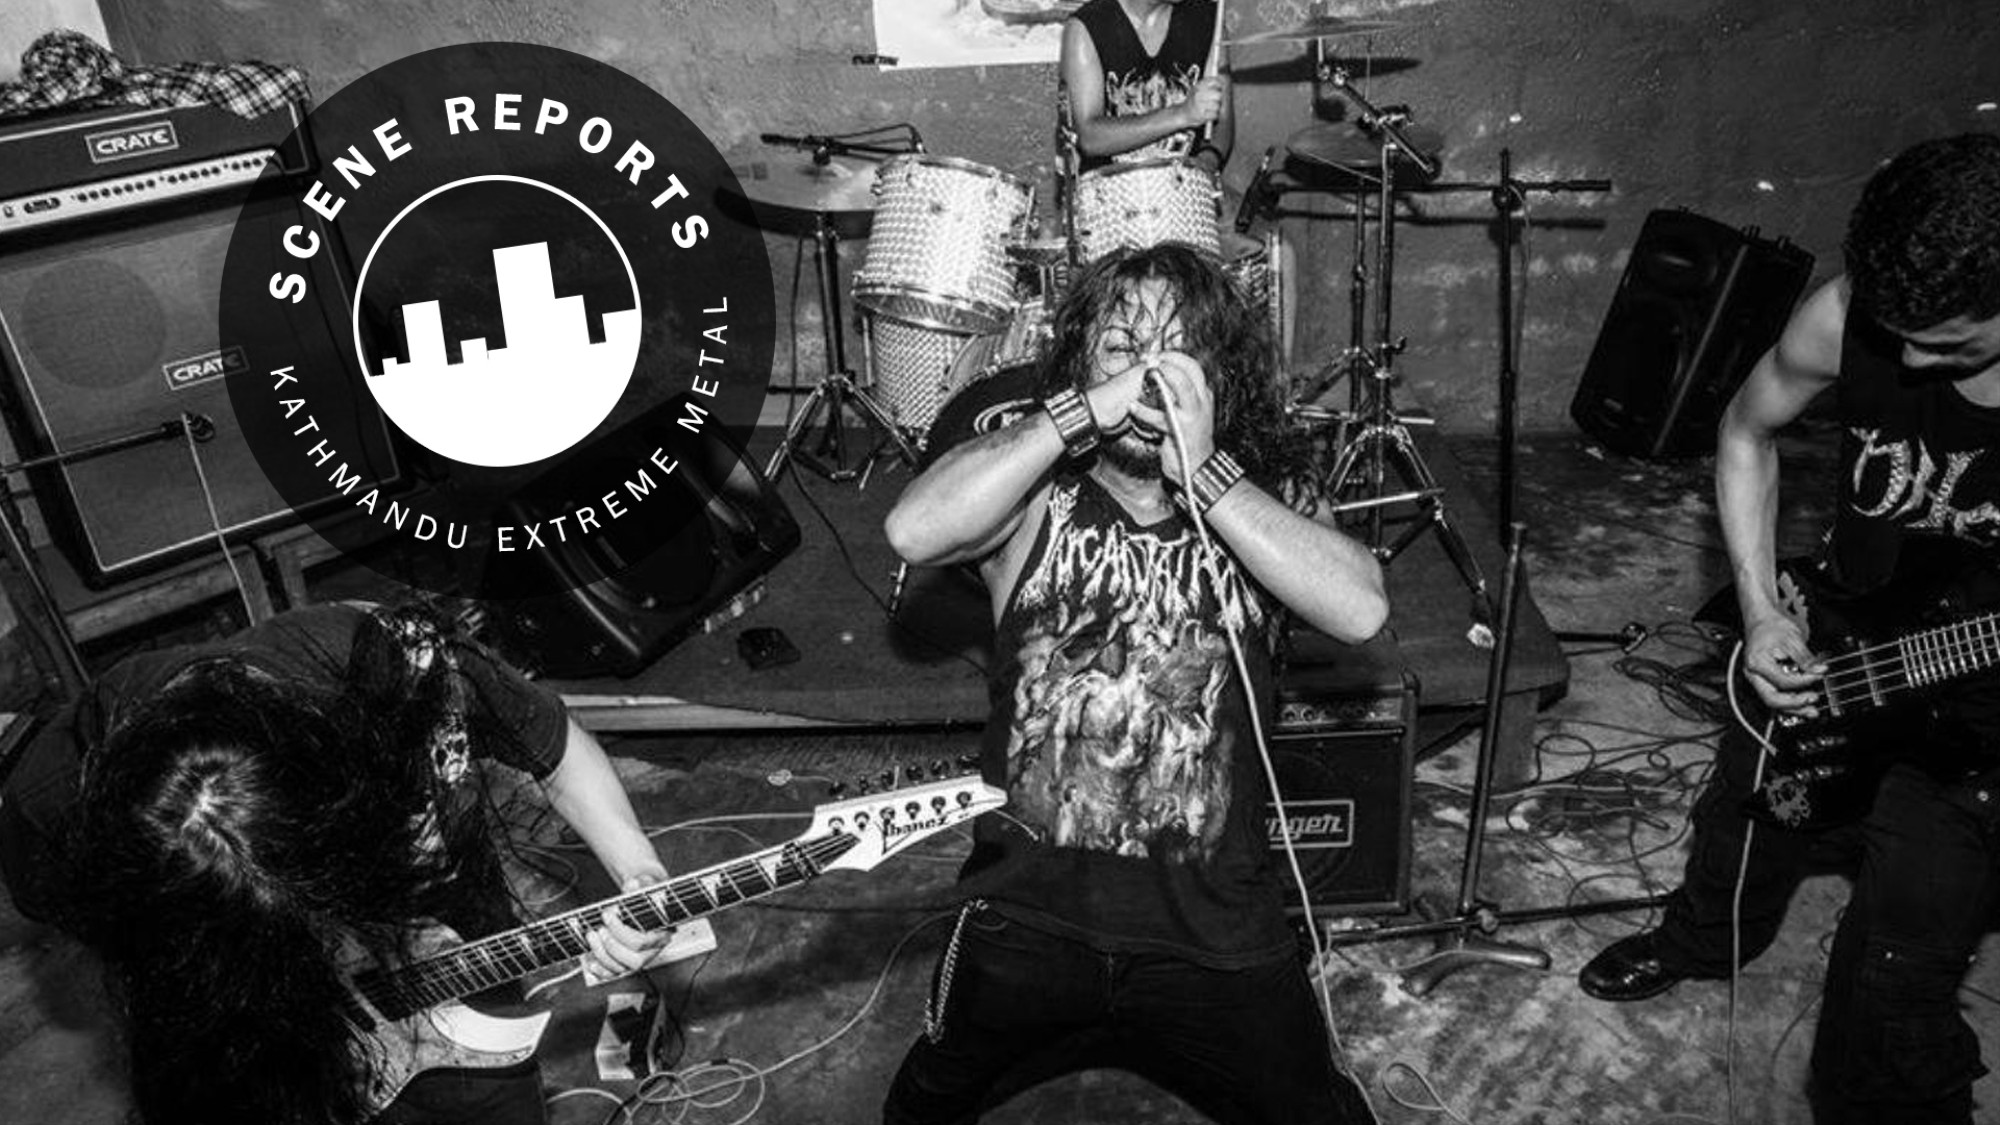 Kathmandu's Extreme Metal Scene Puts Nepal on the Global